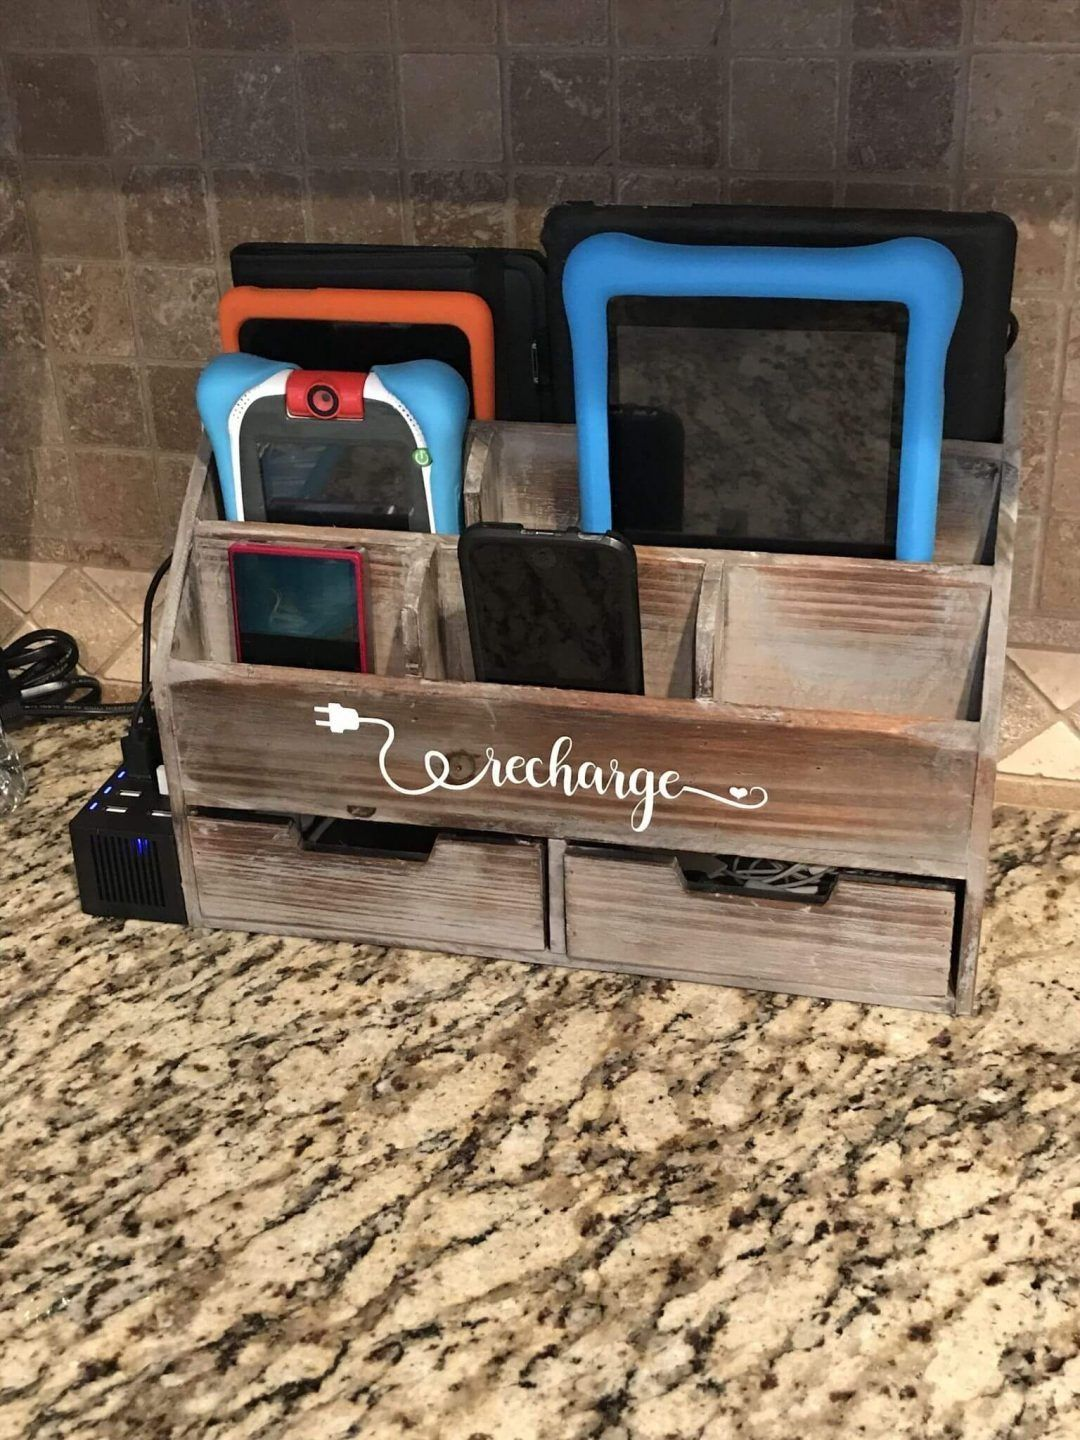 11 Diy Charging Station That Are Easy To Make - 4Fed654764626010F445Adecf88862E6